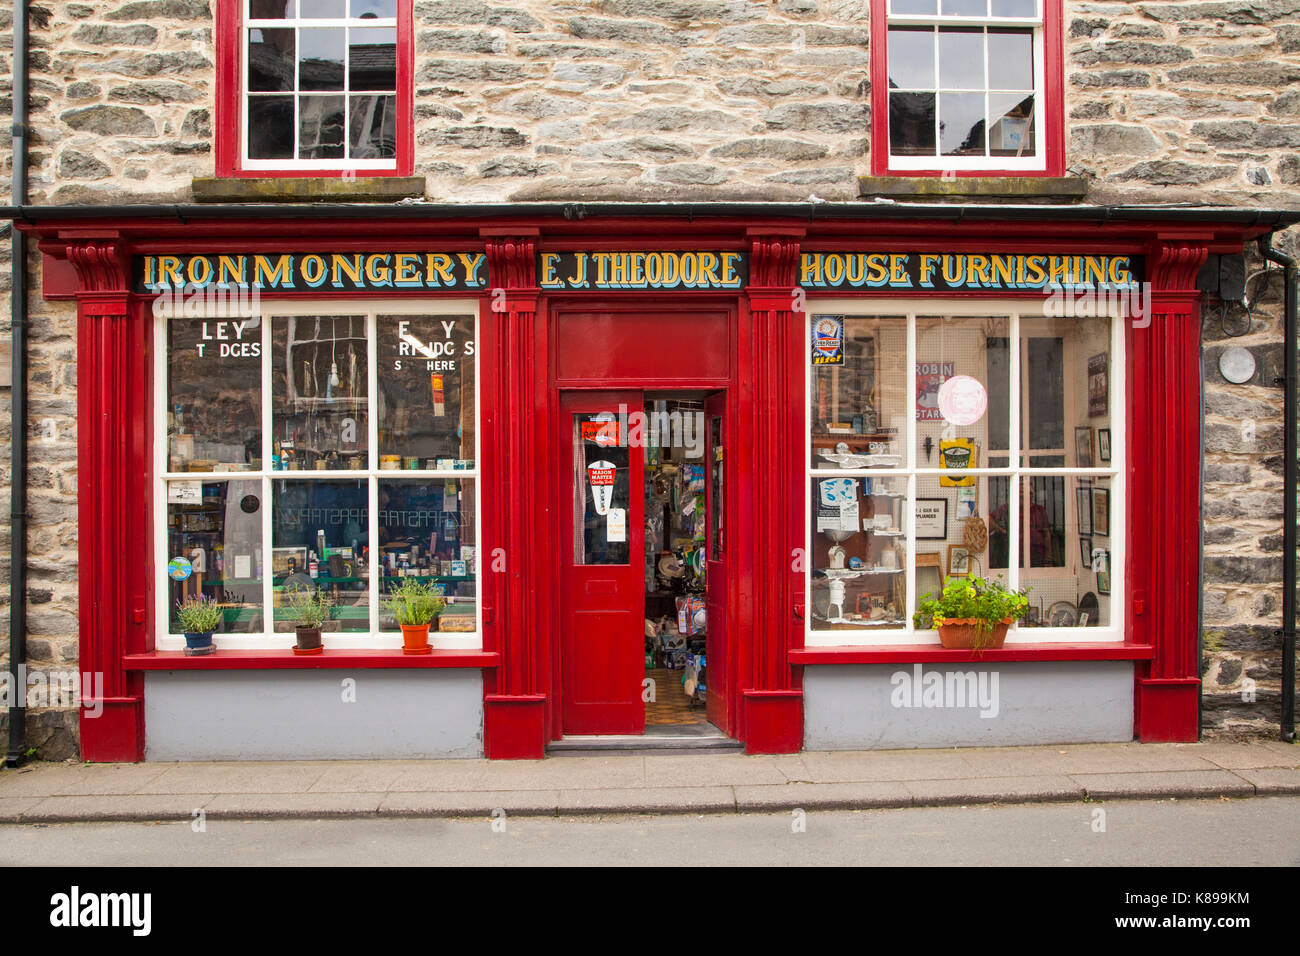 Traditional ironmongers and house furnishing shop in the town of Bala North Wales - Stock Image